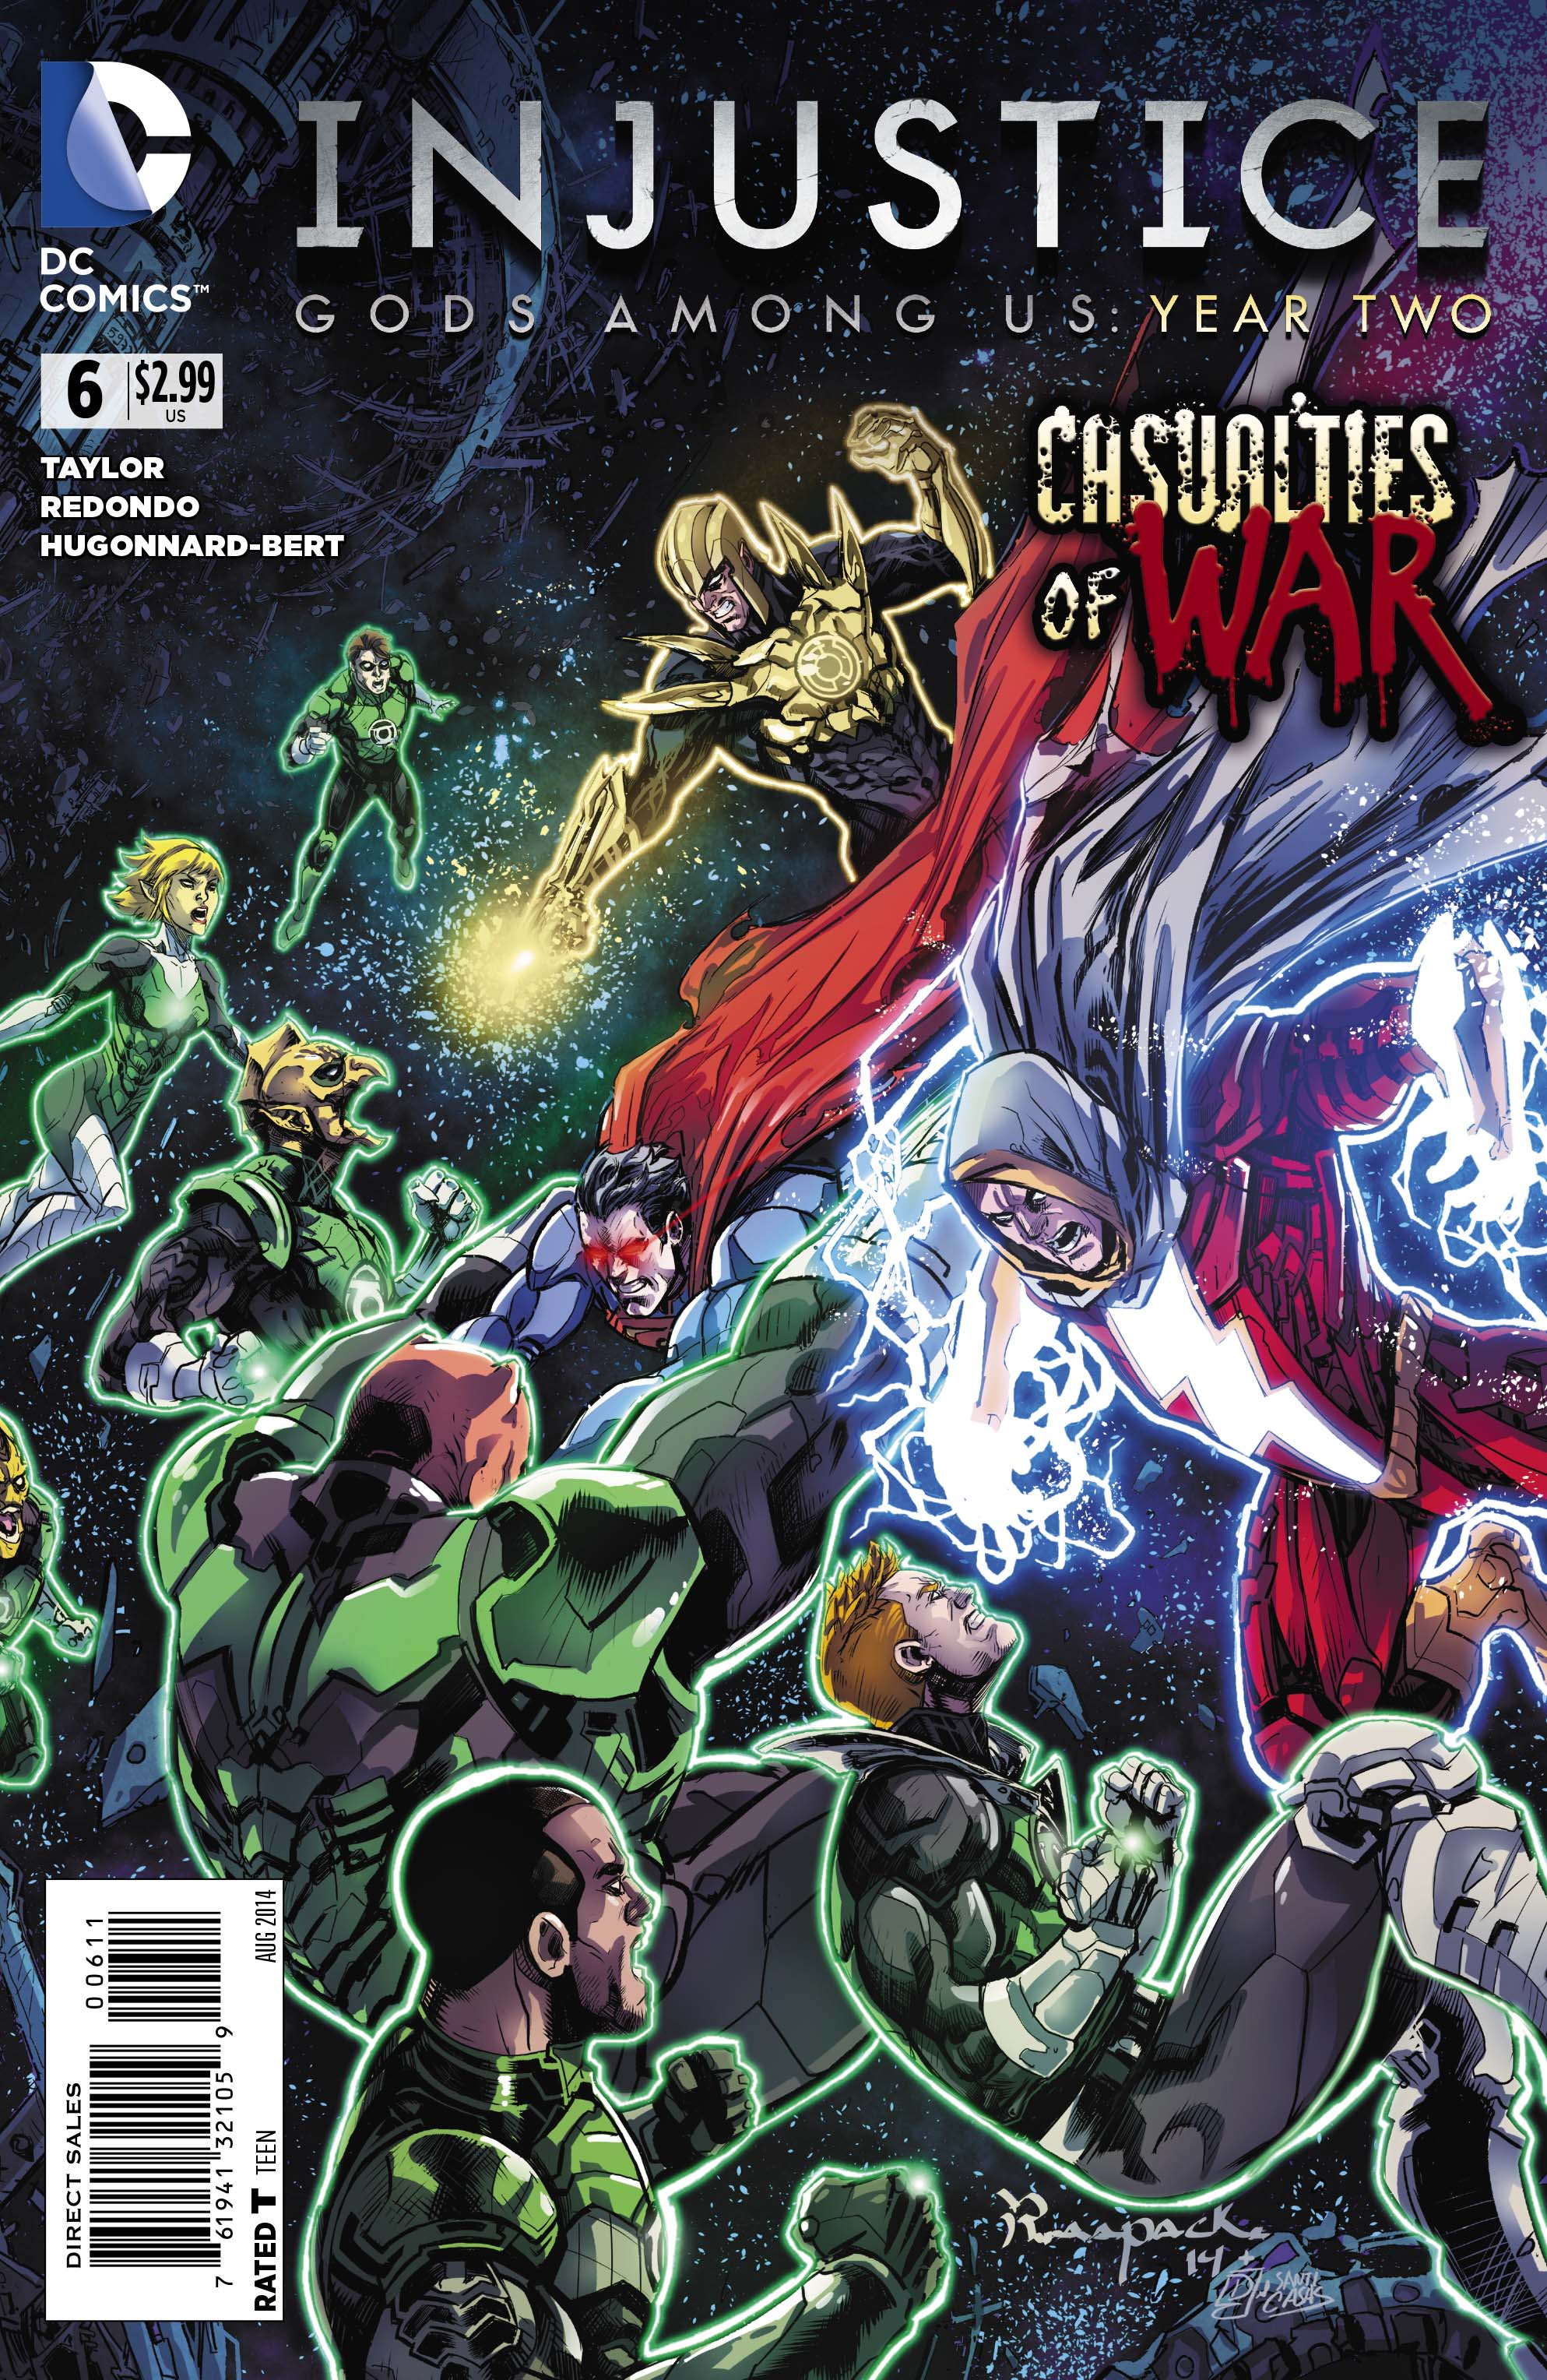 Injustice GAU-Y2 Cover 6-FINAL